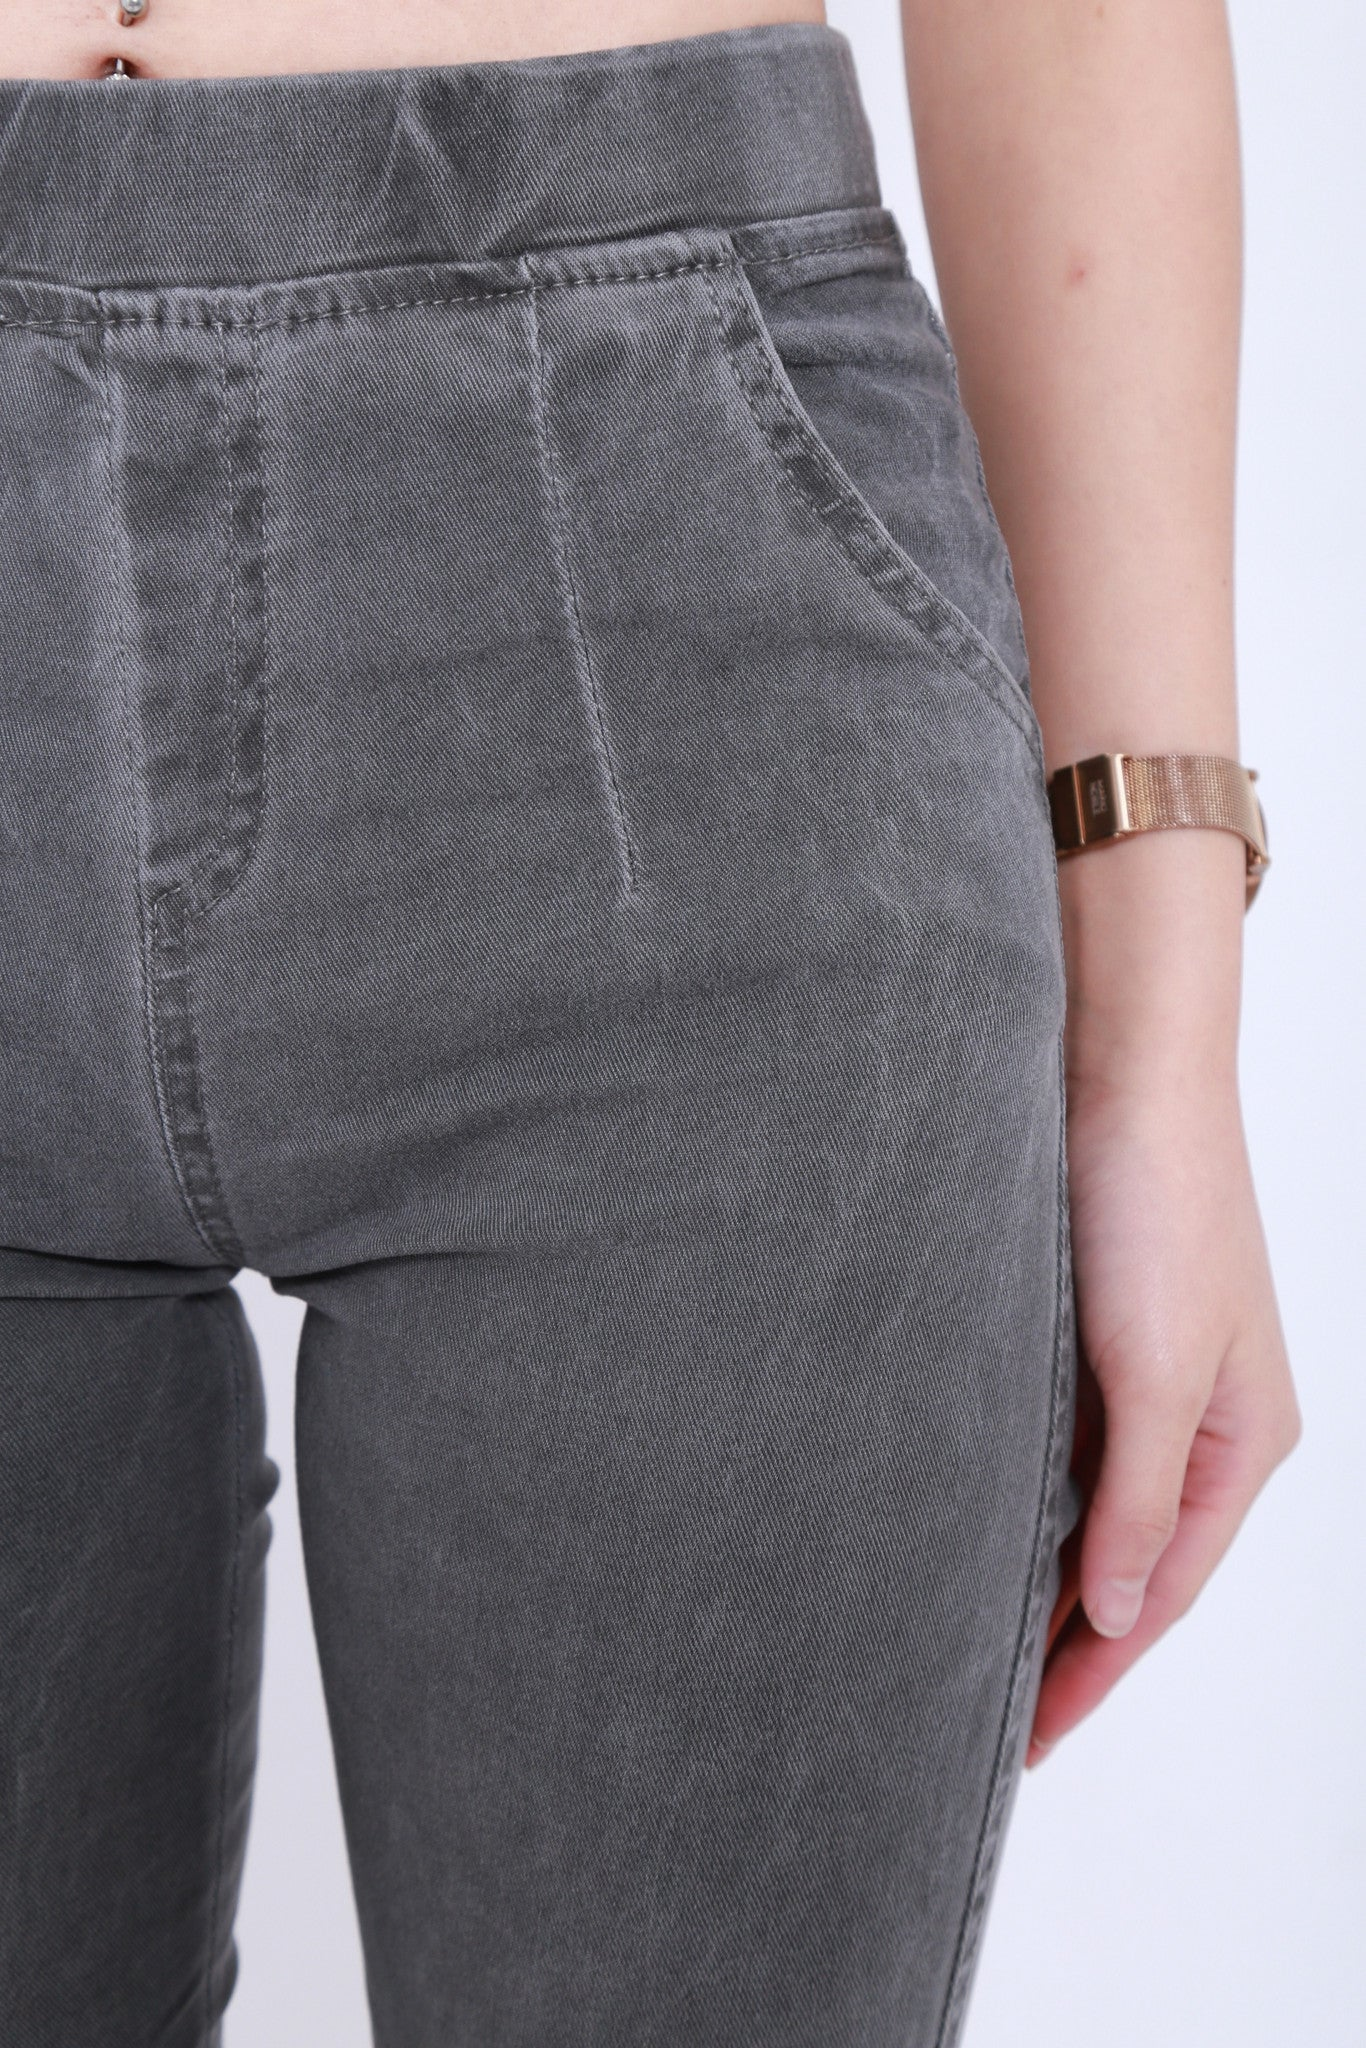 *RESTOCKED* CLASSIC STRETCHY JEGGINGS IN GREY